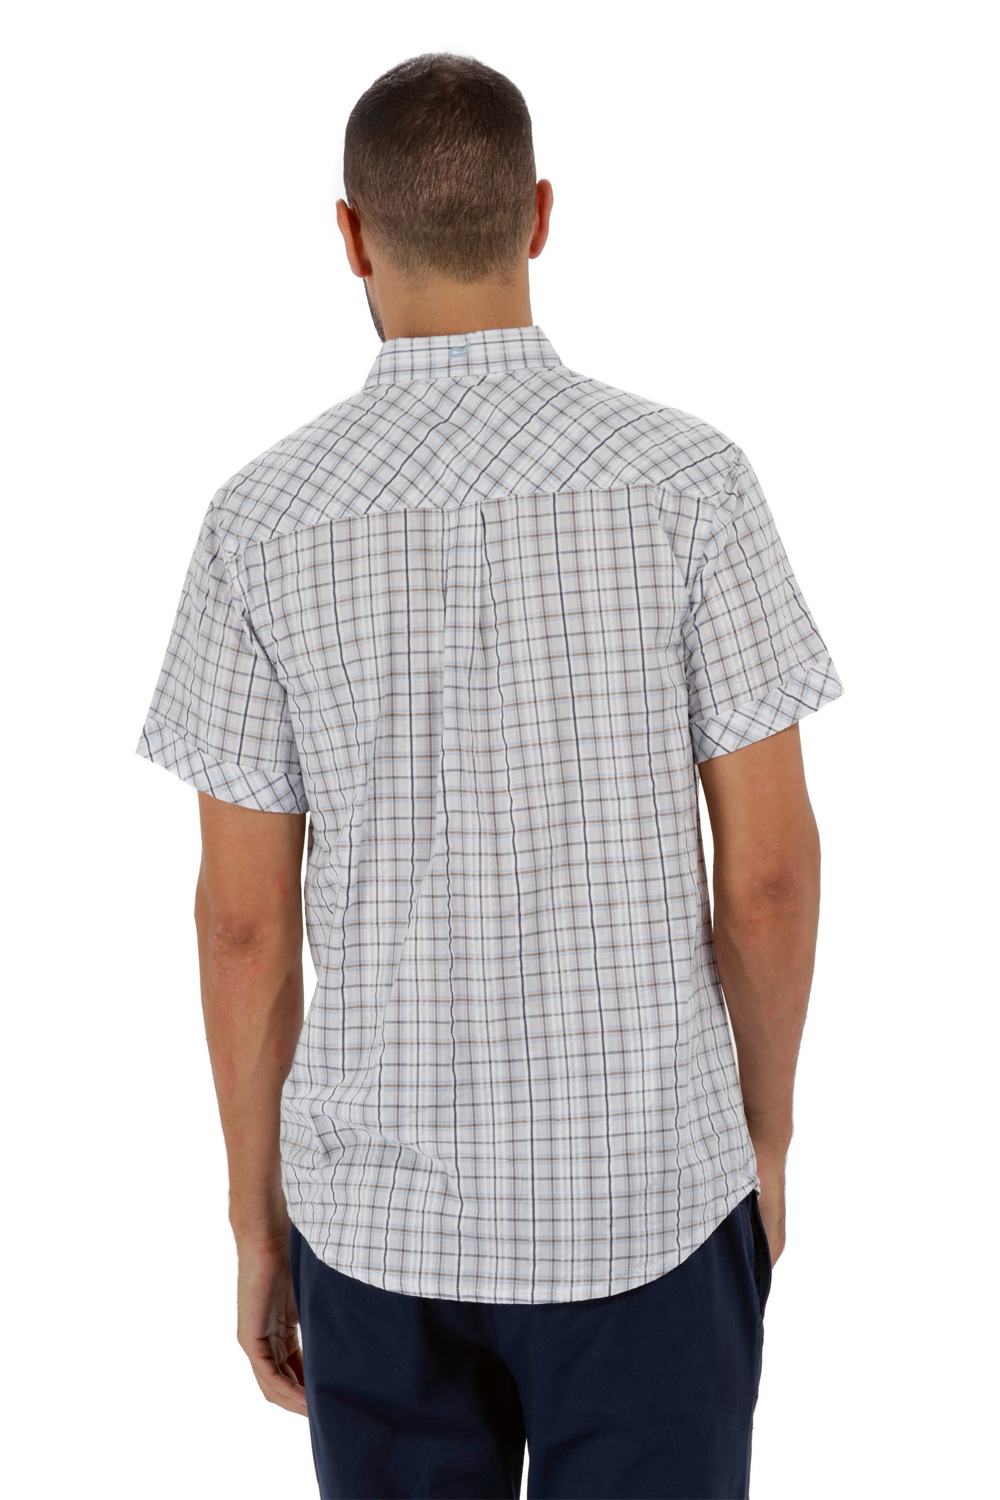 Regatta-Mens-Deakin-II-Coolweave-Cotton-Short-Sleeved-Summer-Check-Shirt-RRP-50 thumbnail 22